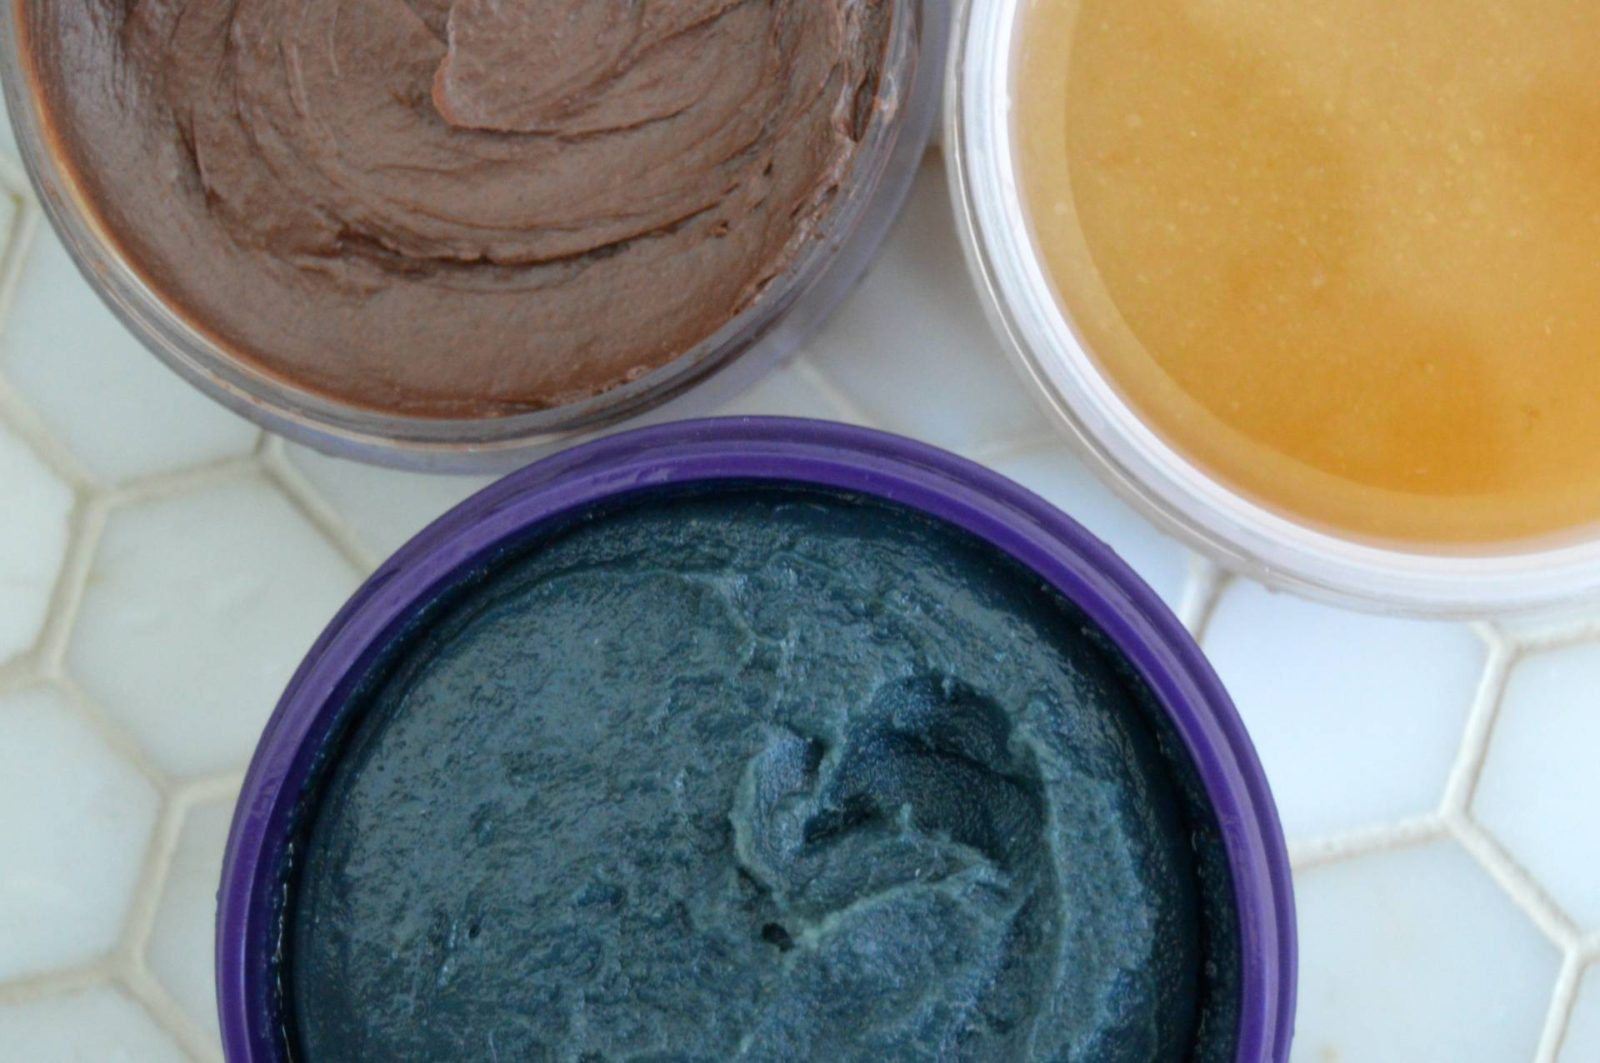 SPLURGE <strike>VS. SAVE</strike> On These Body Scrubs: African Botanics, TATCHA & Kat Burki